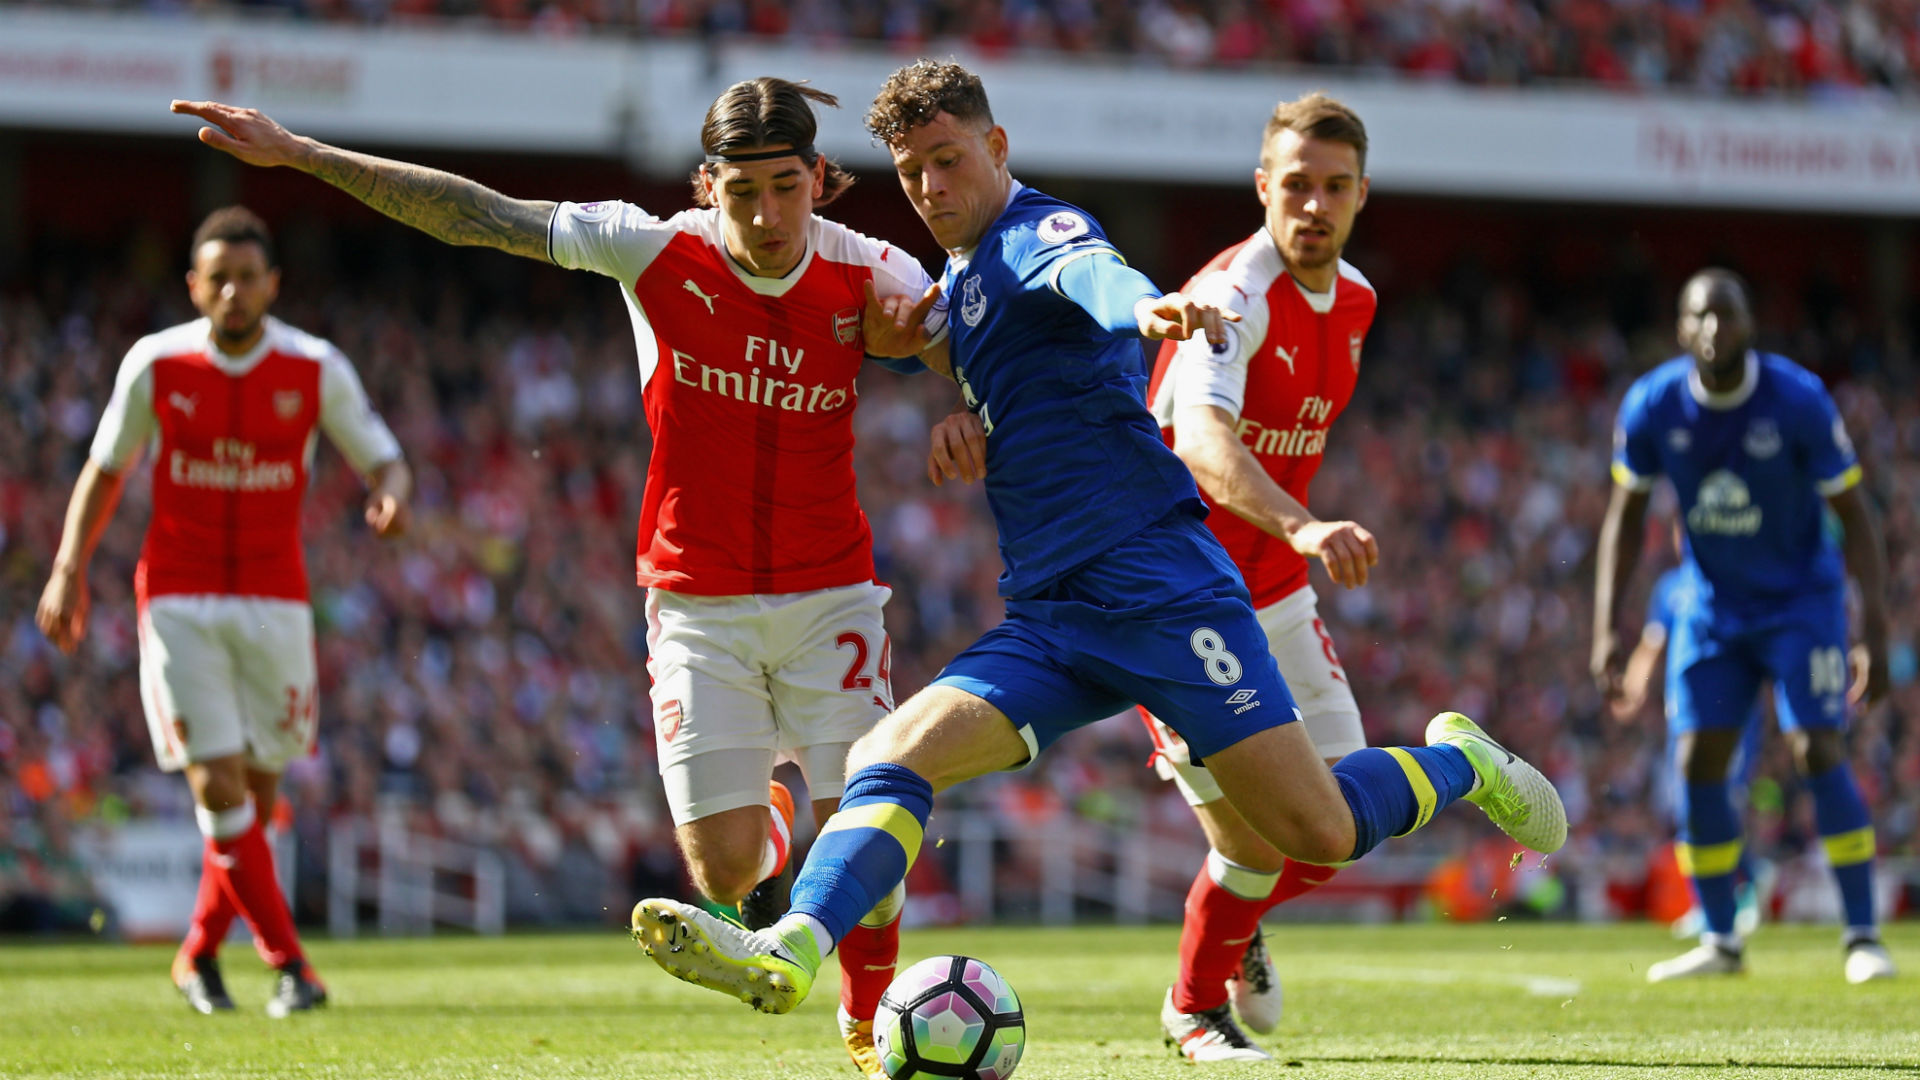 Arsenal 'to rival Tottenham Hotspur for Ross Barkley signature'